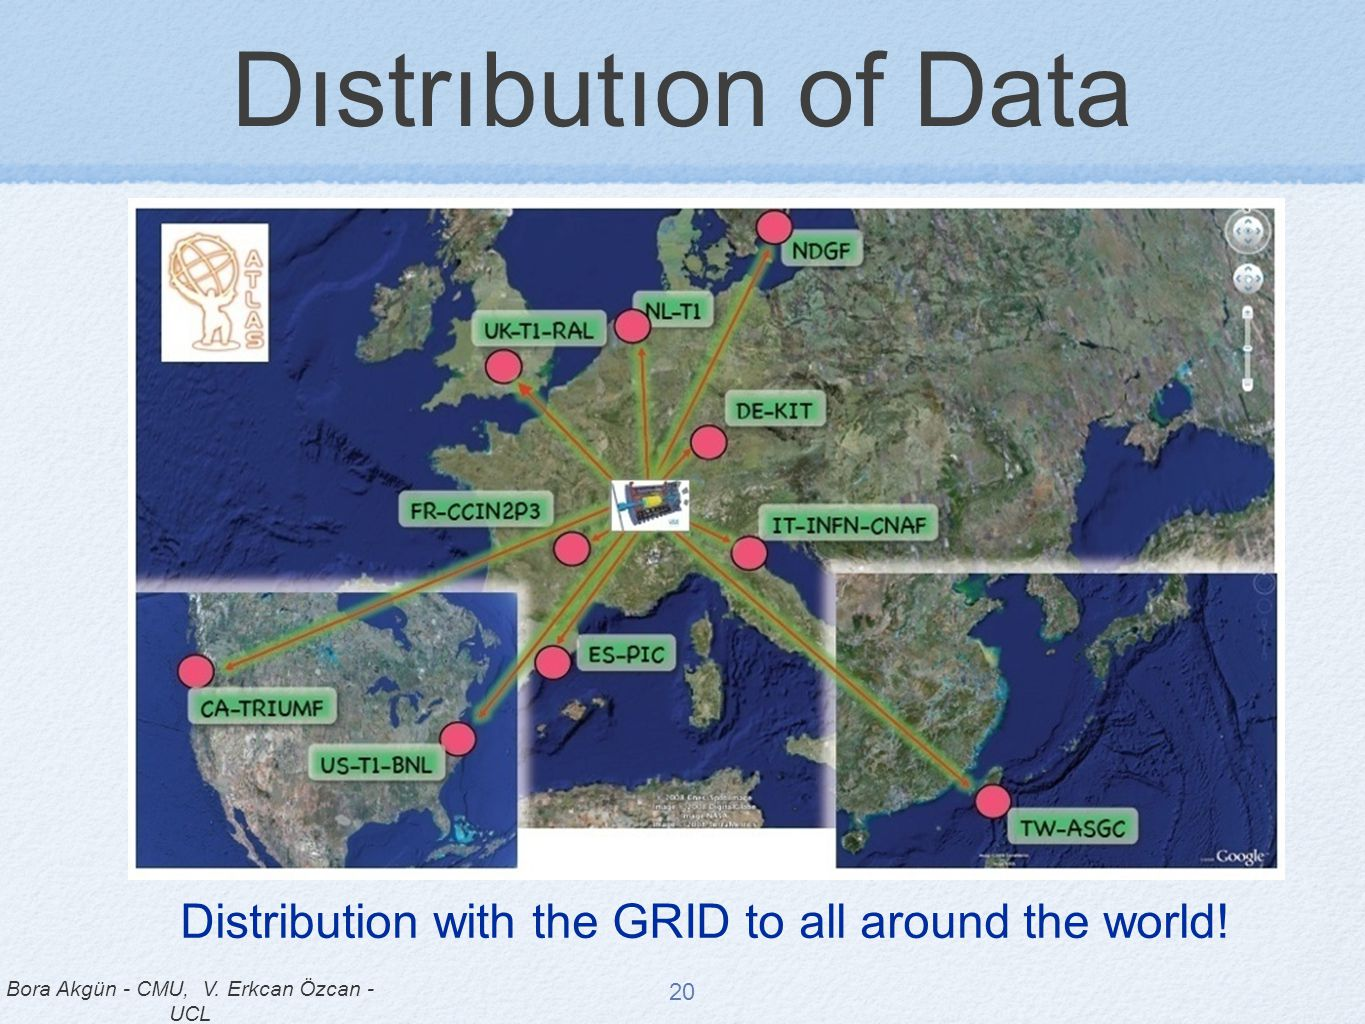 Distribution with the GRID to all around the world!